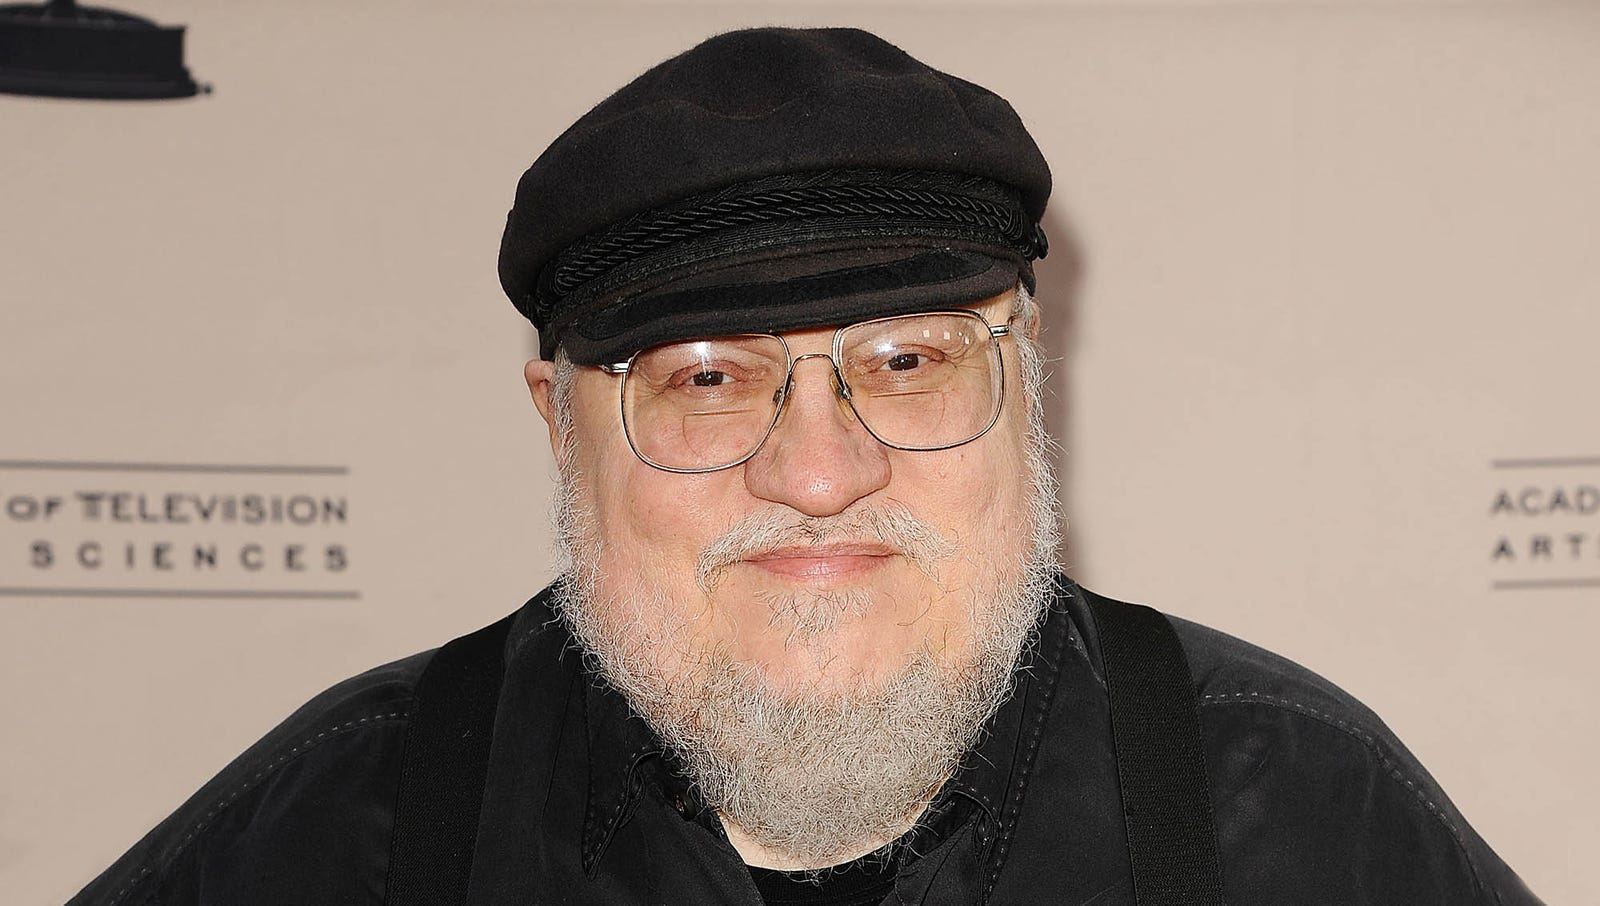 George R. R. Martin Kills Off Whole Family